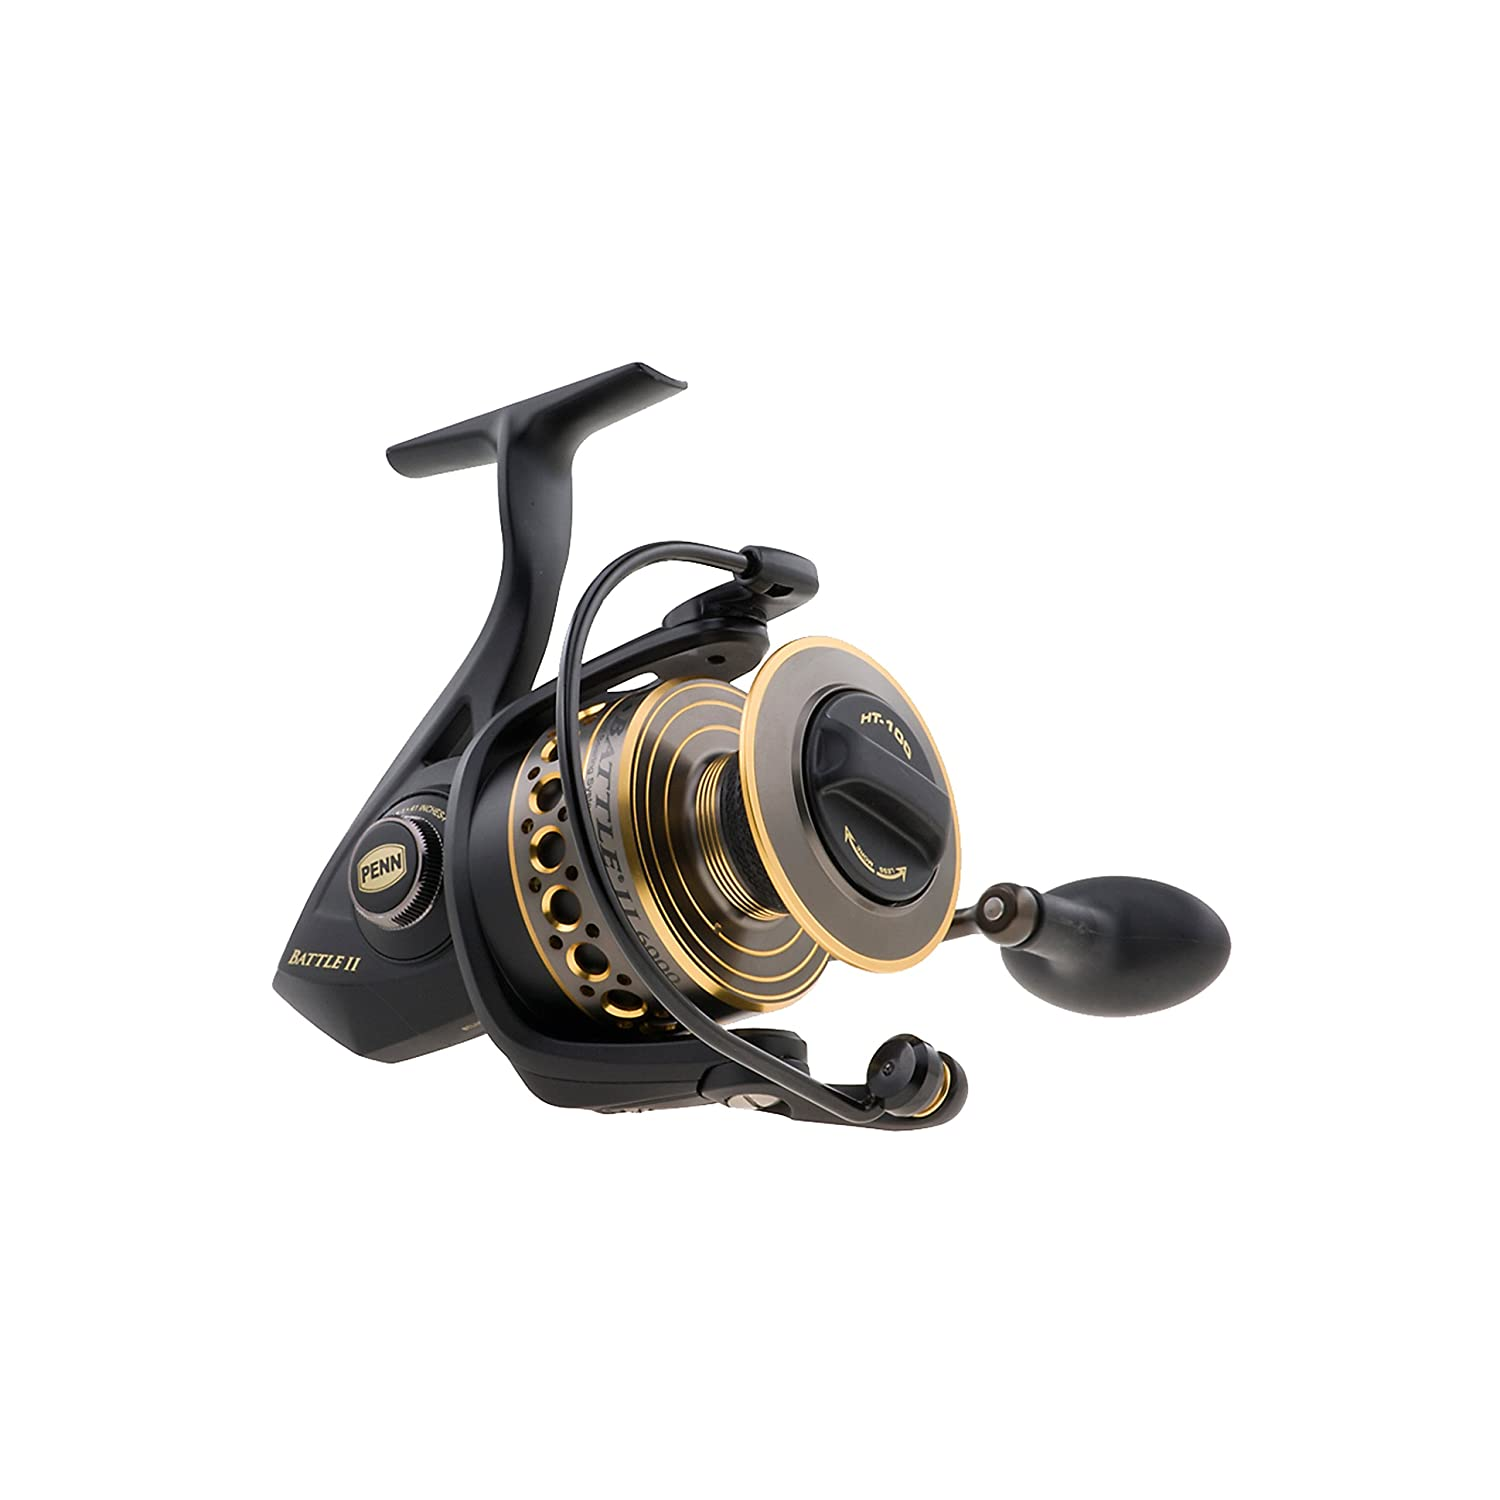 Penn Battle 2 Spinning Reel Review